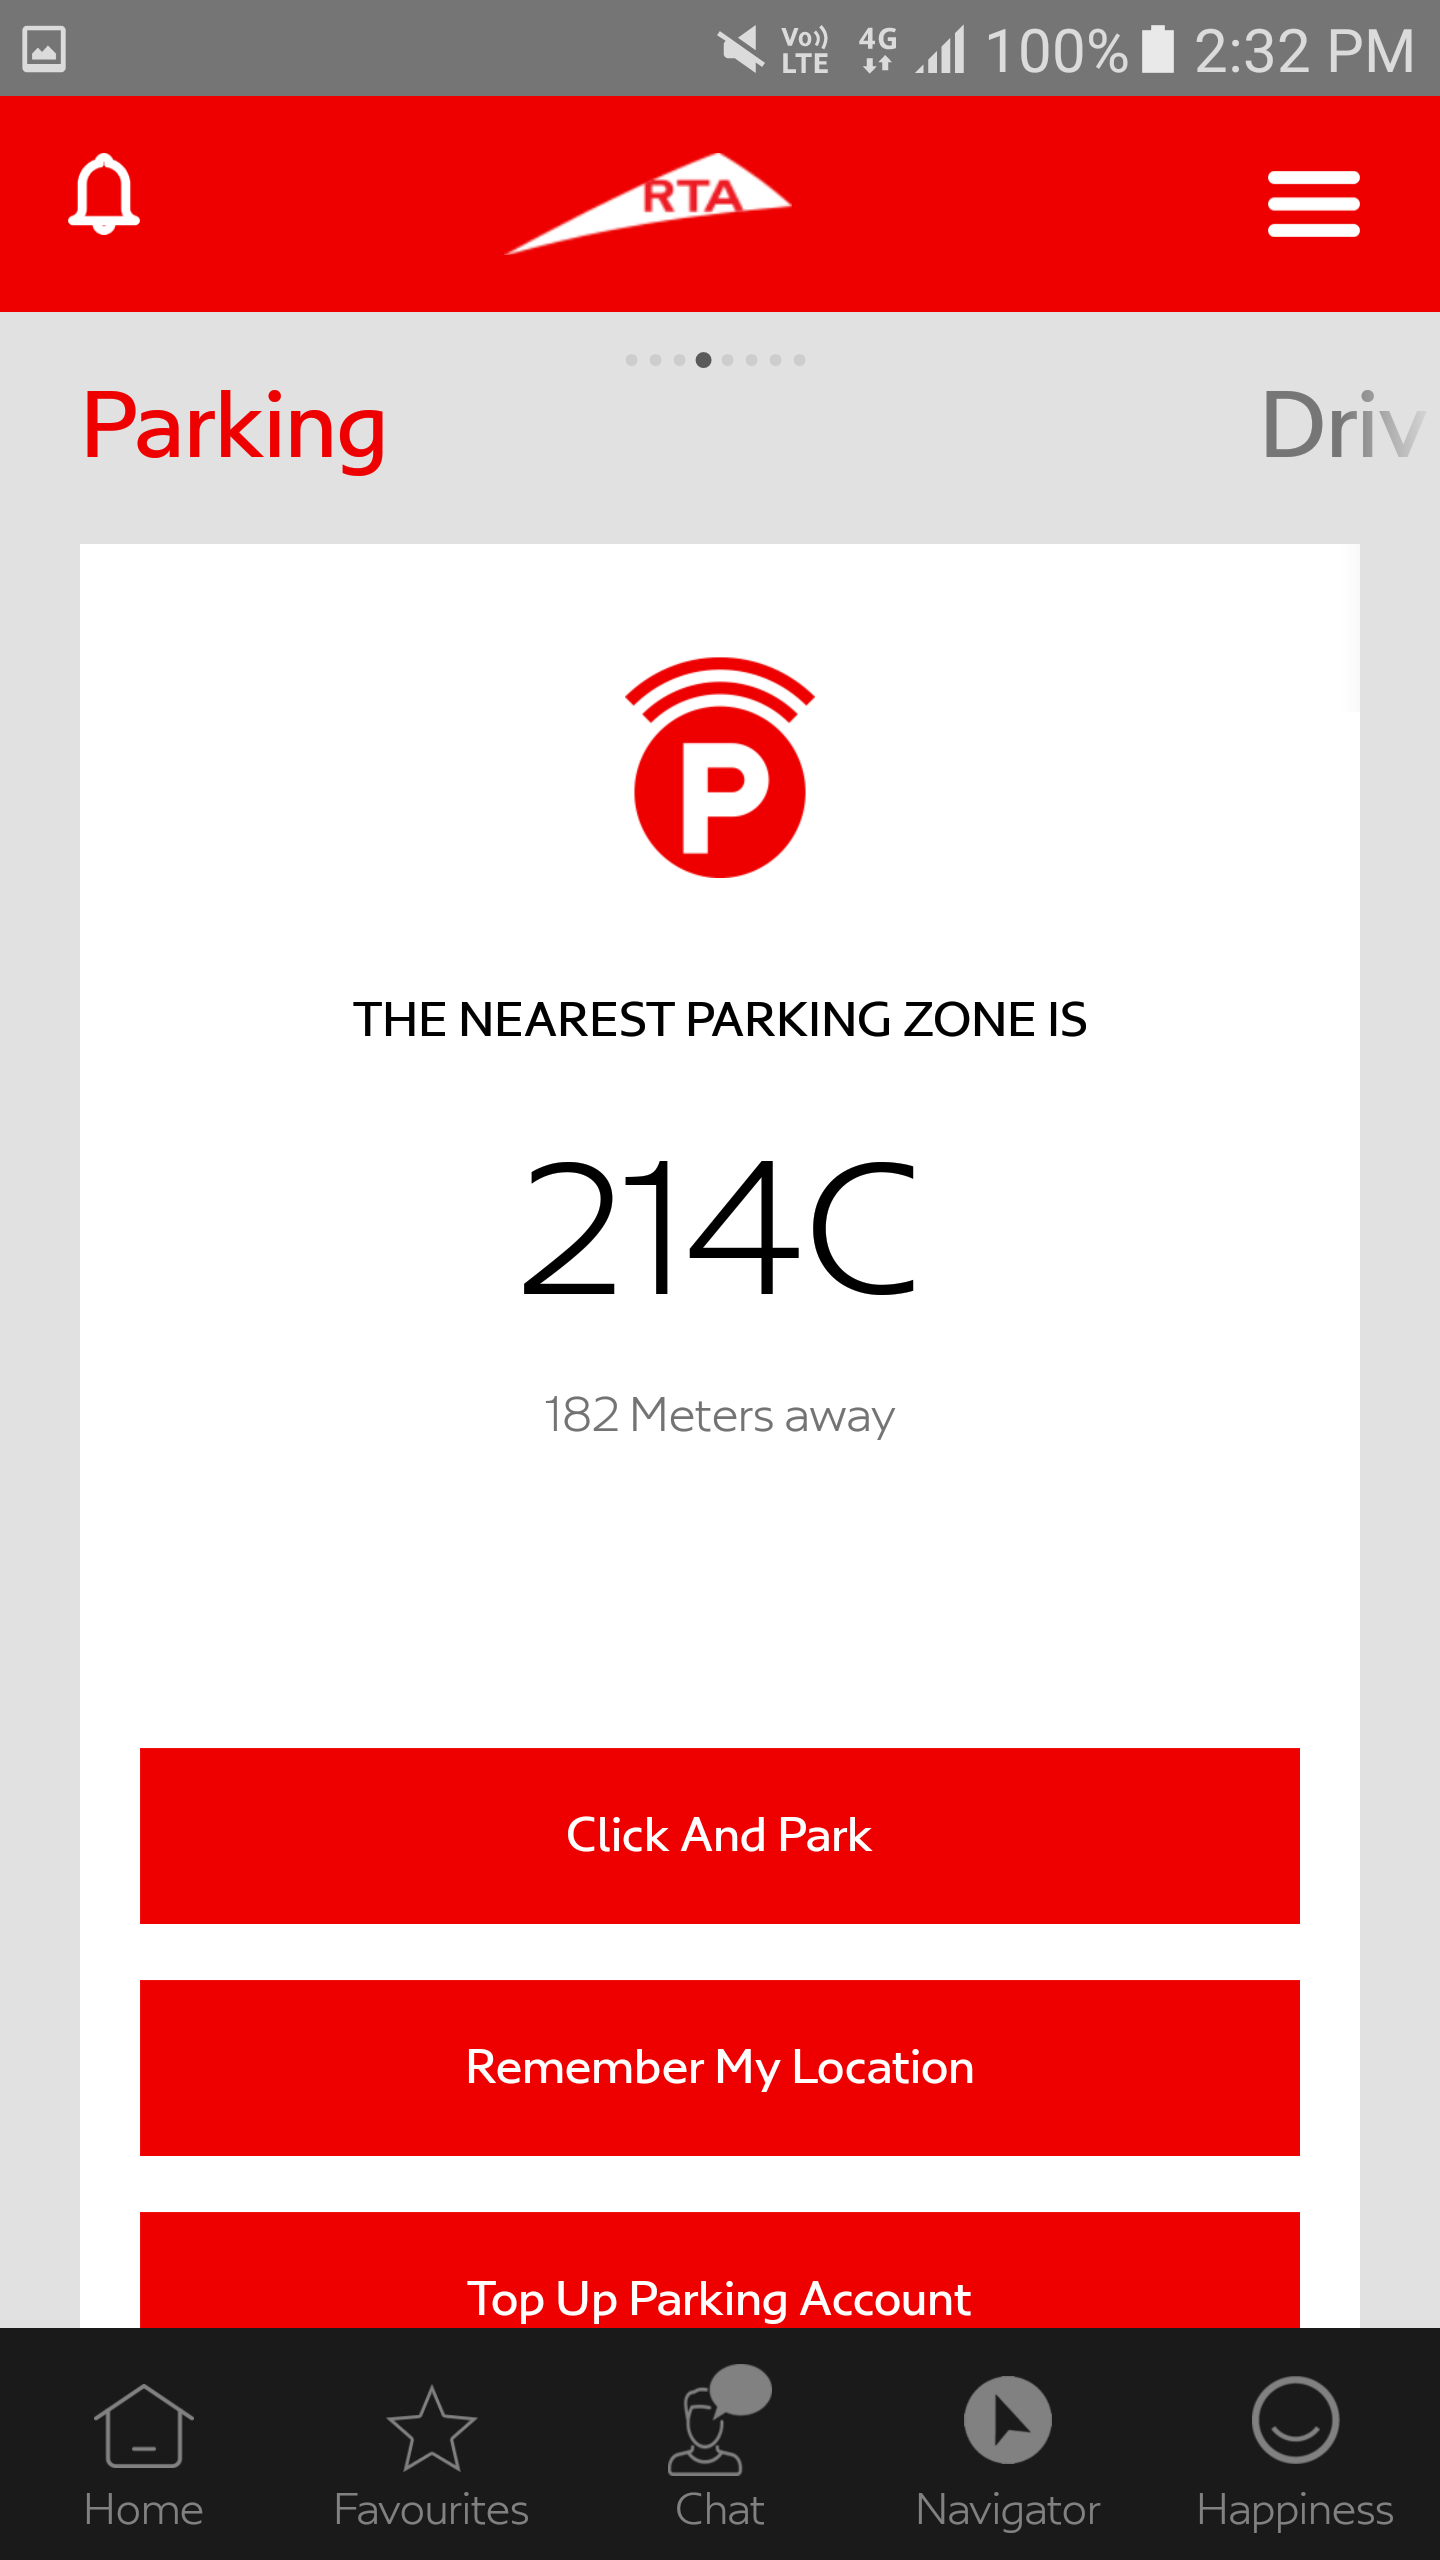 RTA Dubai App parking screen